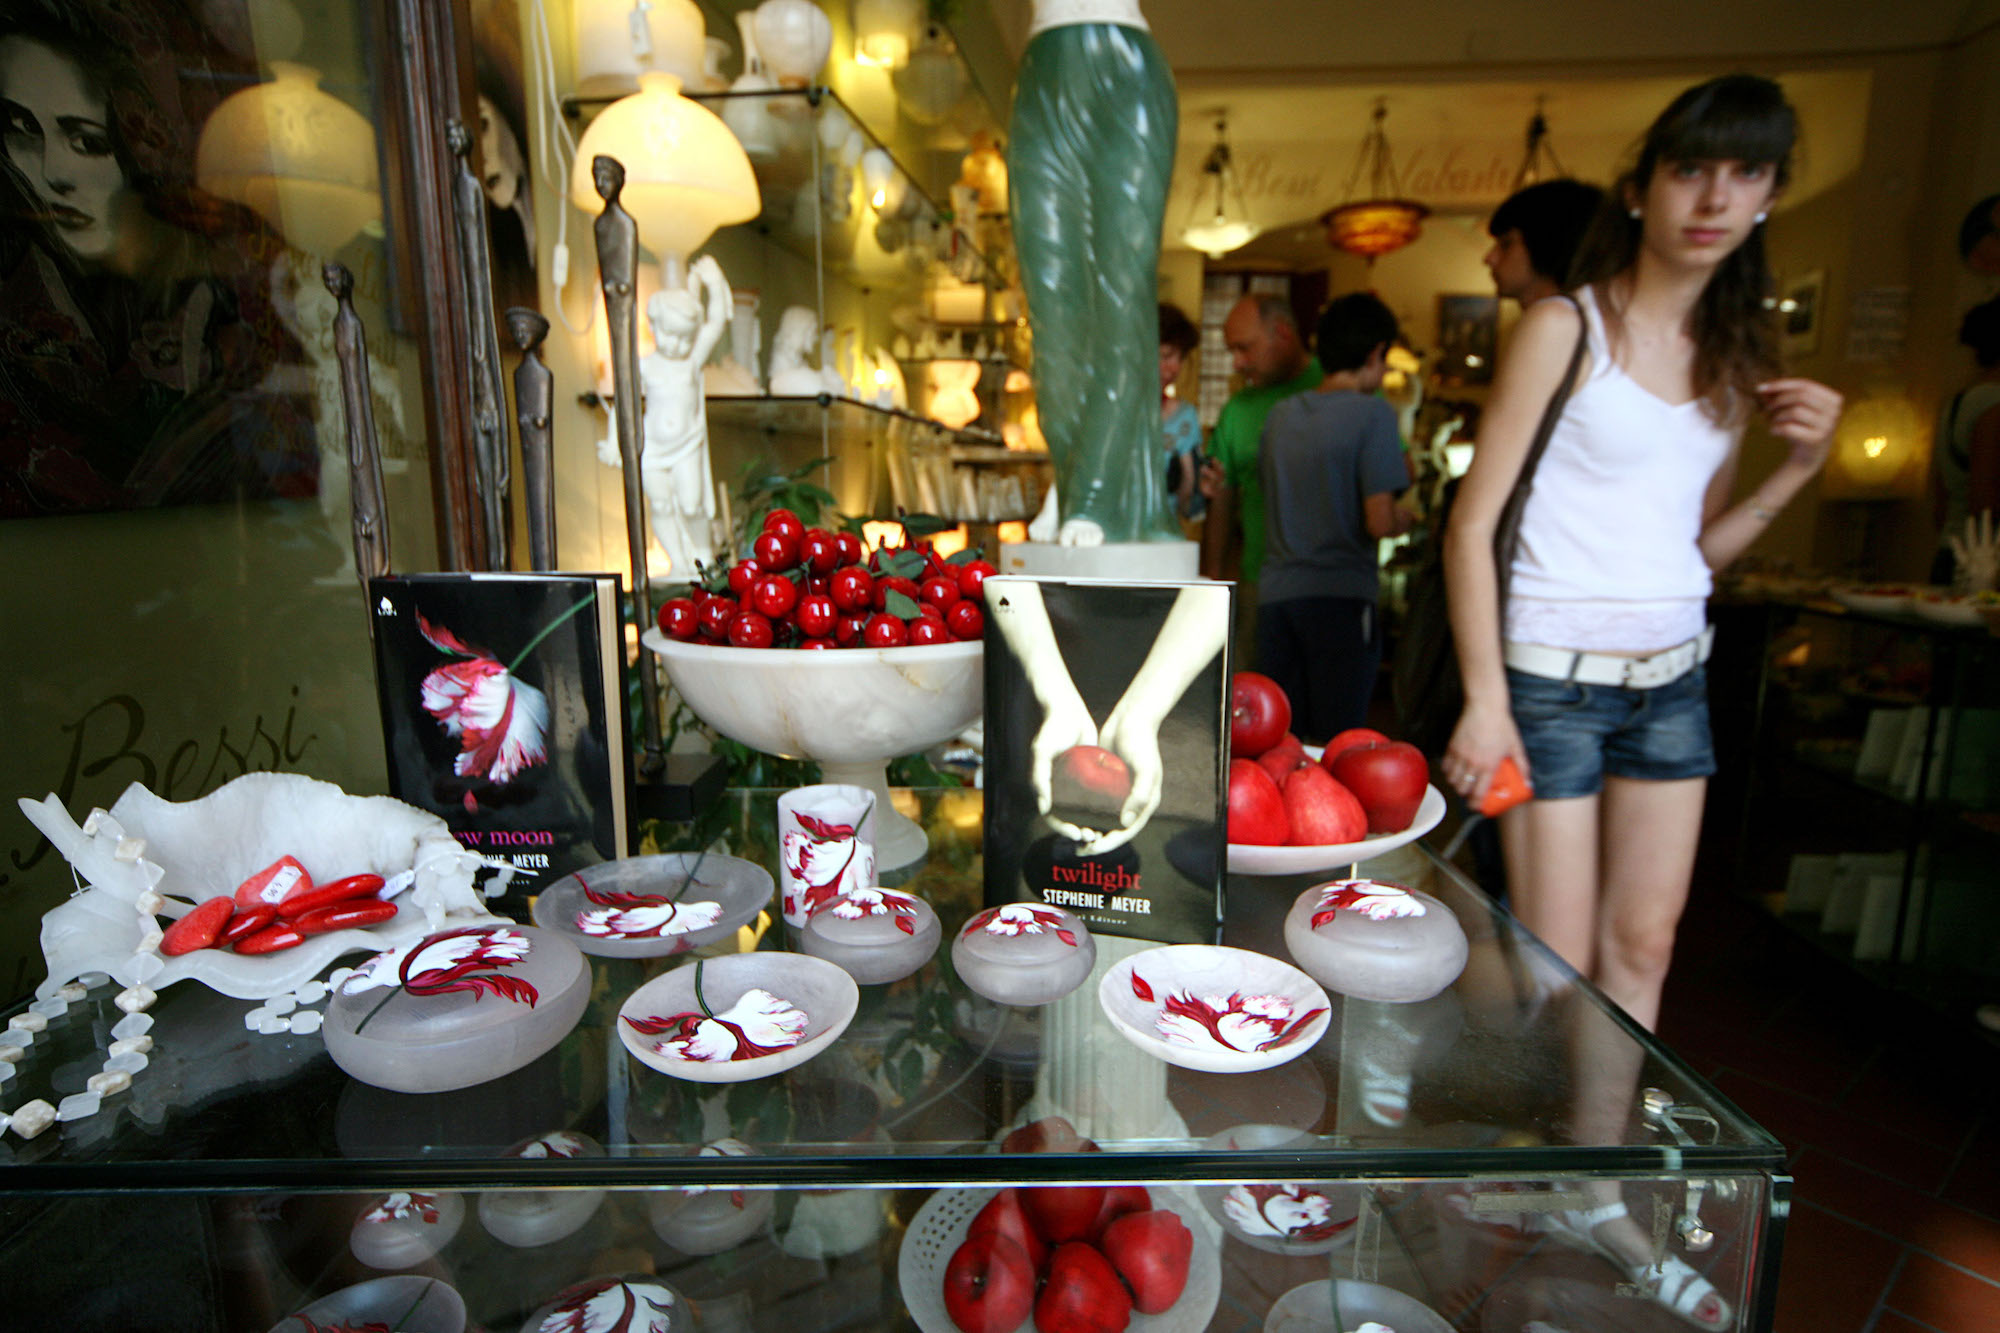 Tourists visit 'New Moon' and 'Twilight' merch stores on June 29, 2009 in Volterra, Italy, a place named in 'New Moon'